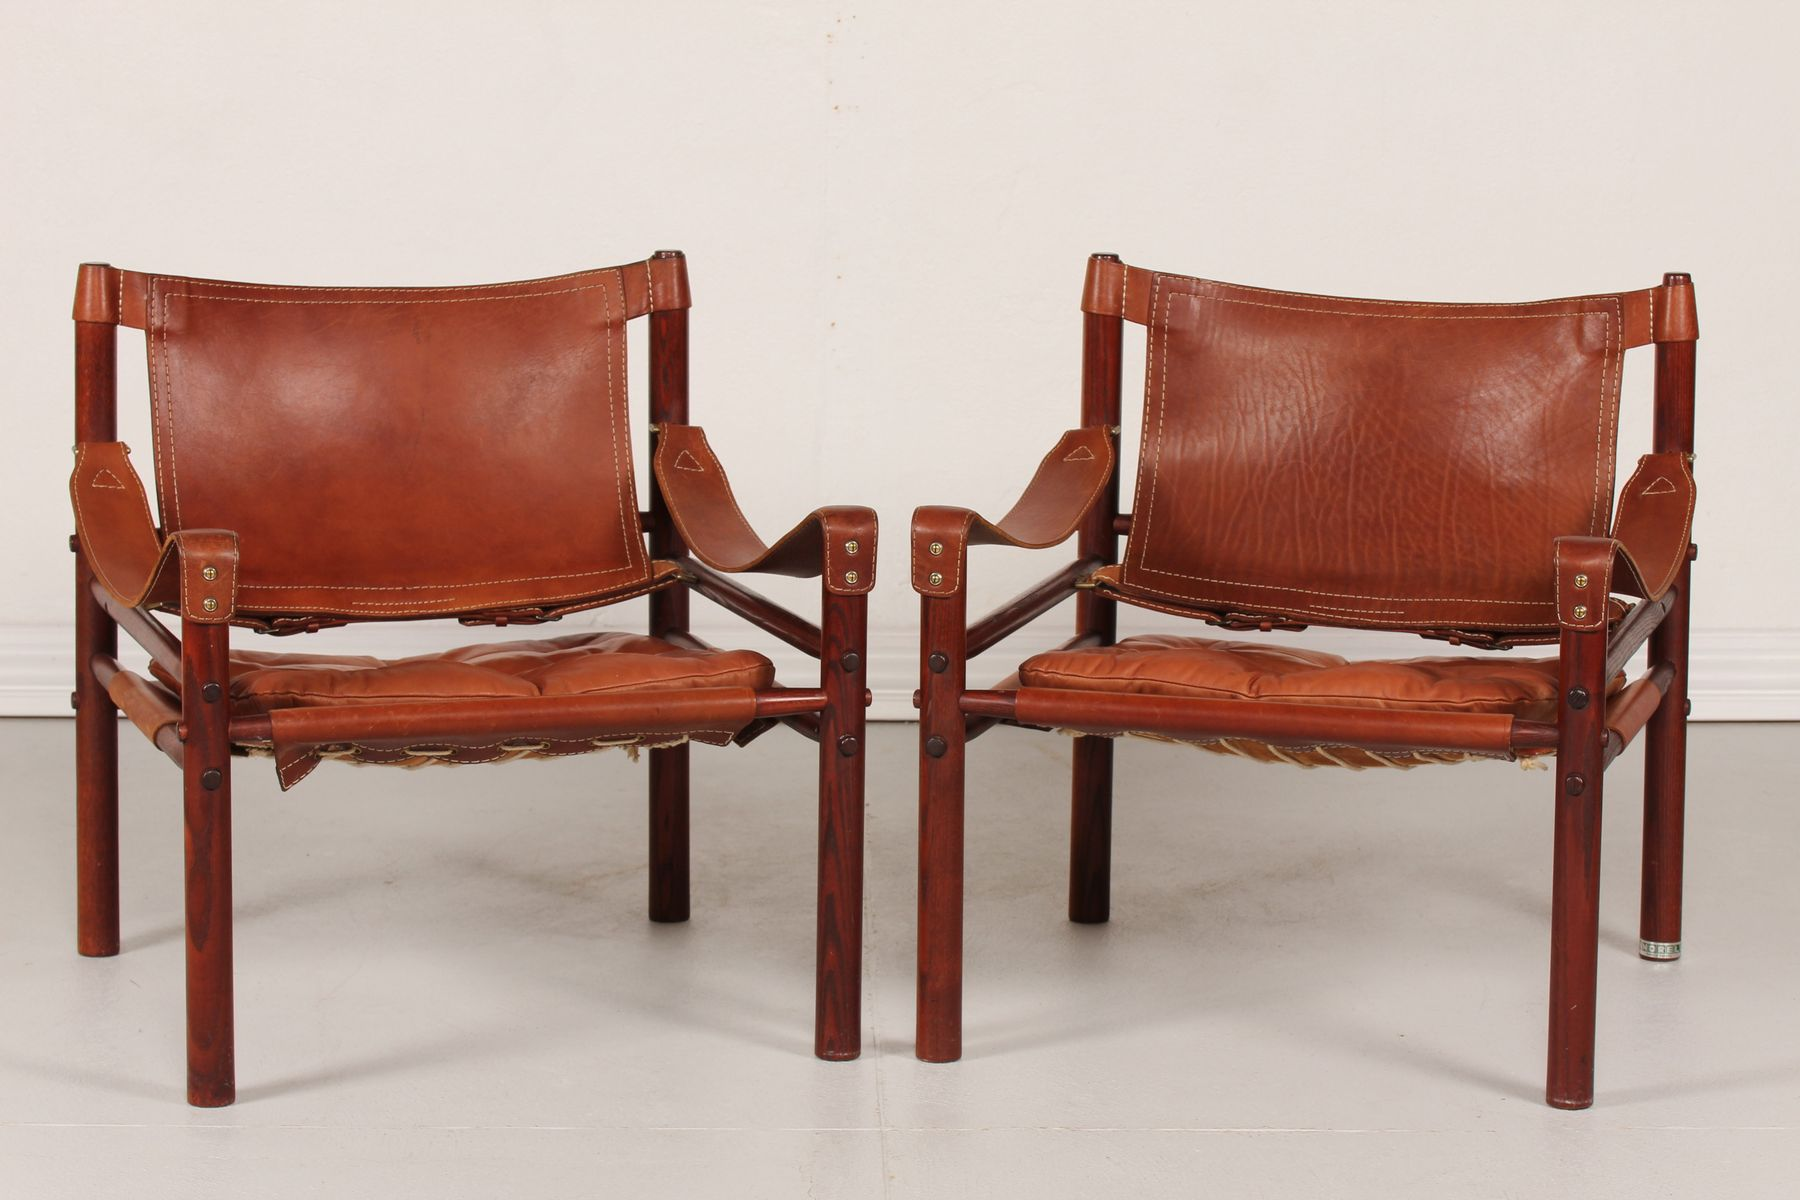 Scirocco Safari Chairs from Arne Norell 1970s Set of 2 for sale